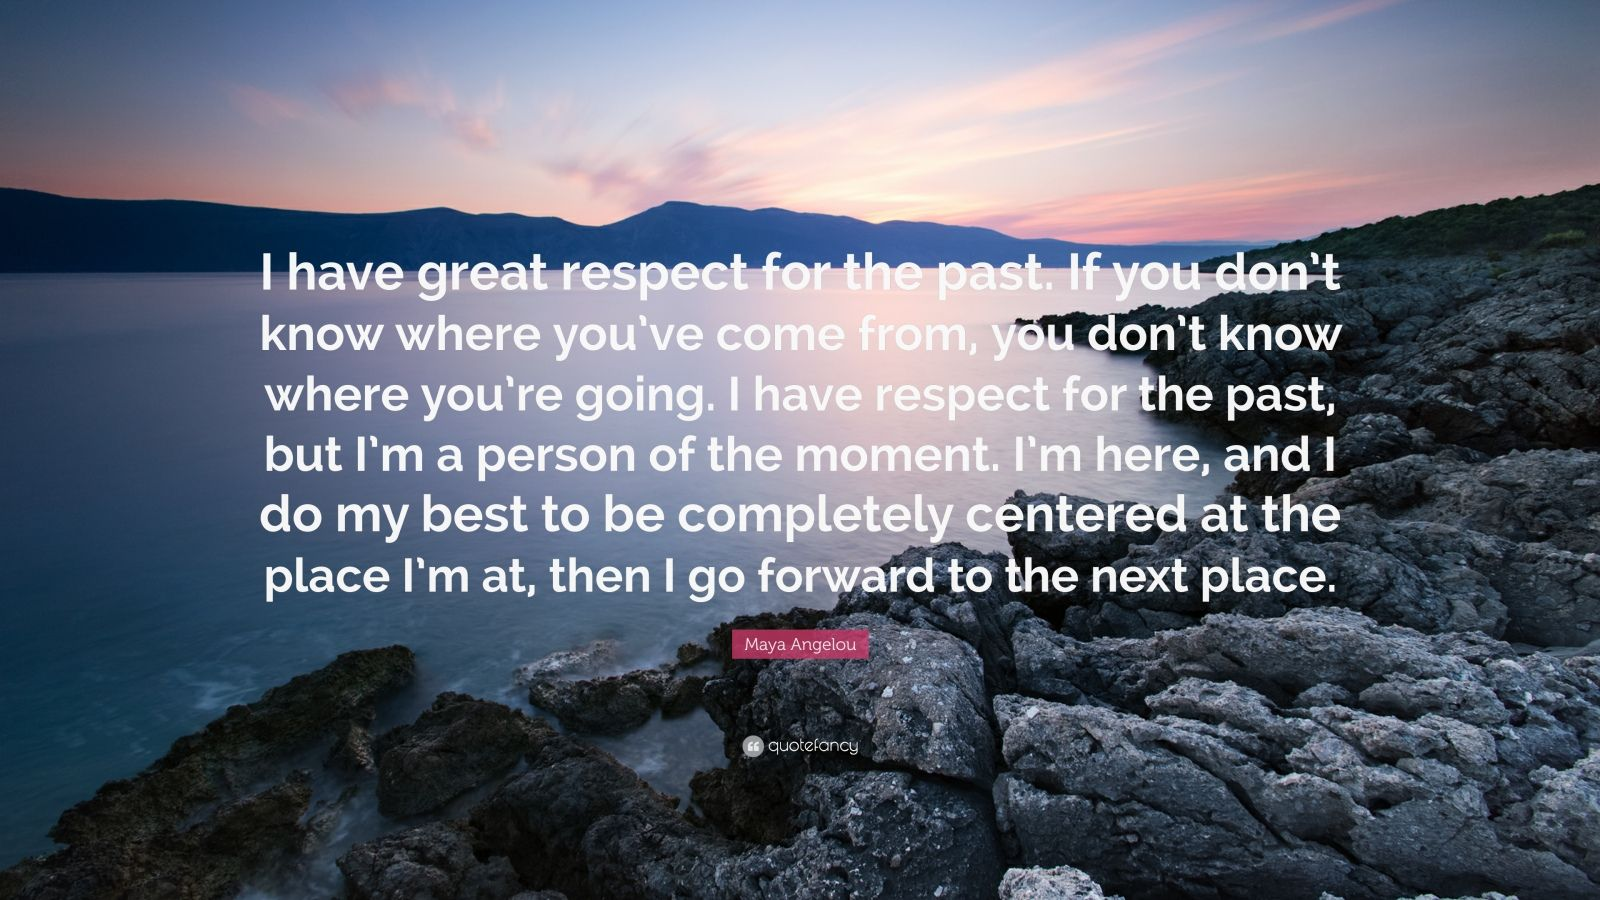 """Maya Angelou Quote: """"I have great respect for the past. If you don't know where you've come from, you don't know where you're going. I have respect for the past, but I'm a person of the moment. I'm here, and I do my best to be completely centered at the place I'm at, then I go forward to the next place."""""""